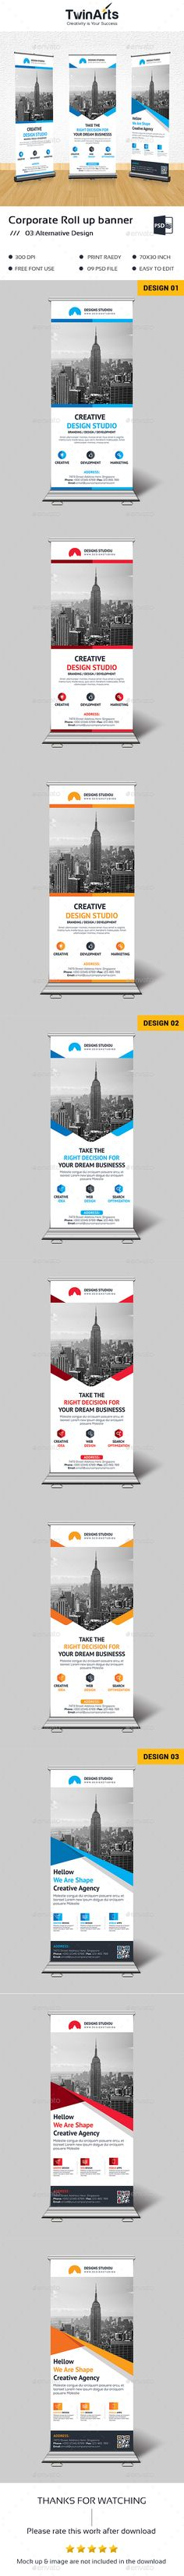 Corporate Roll up Banner Template PSD. Download here: https://graphicriver.net/item/corporate-roll-up-banner-template-/17600030?ref=ksioks